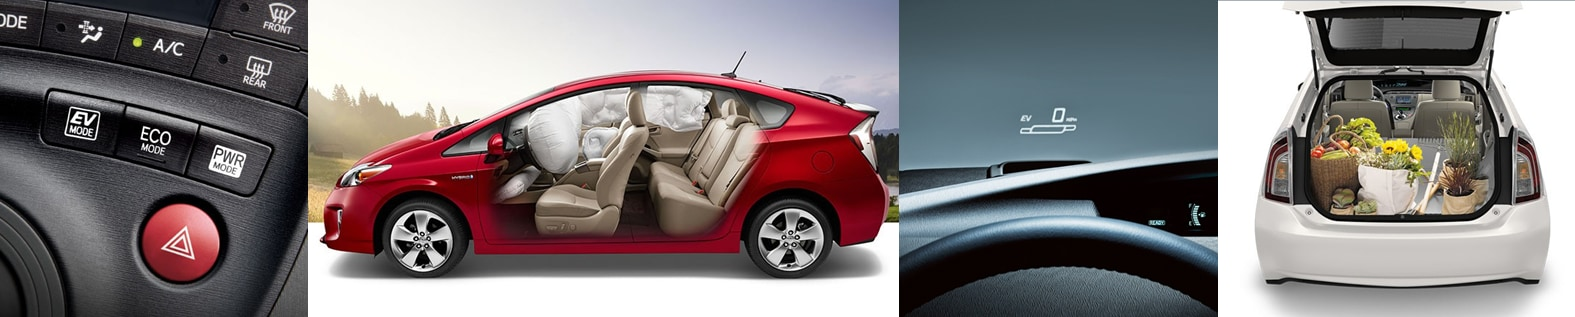 All New 2015 Toyota Prius | Frank Toyota | Serving the San